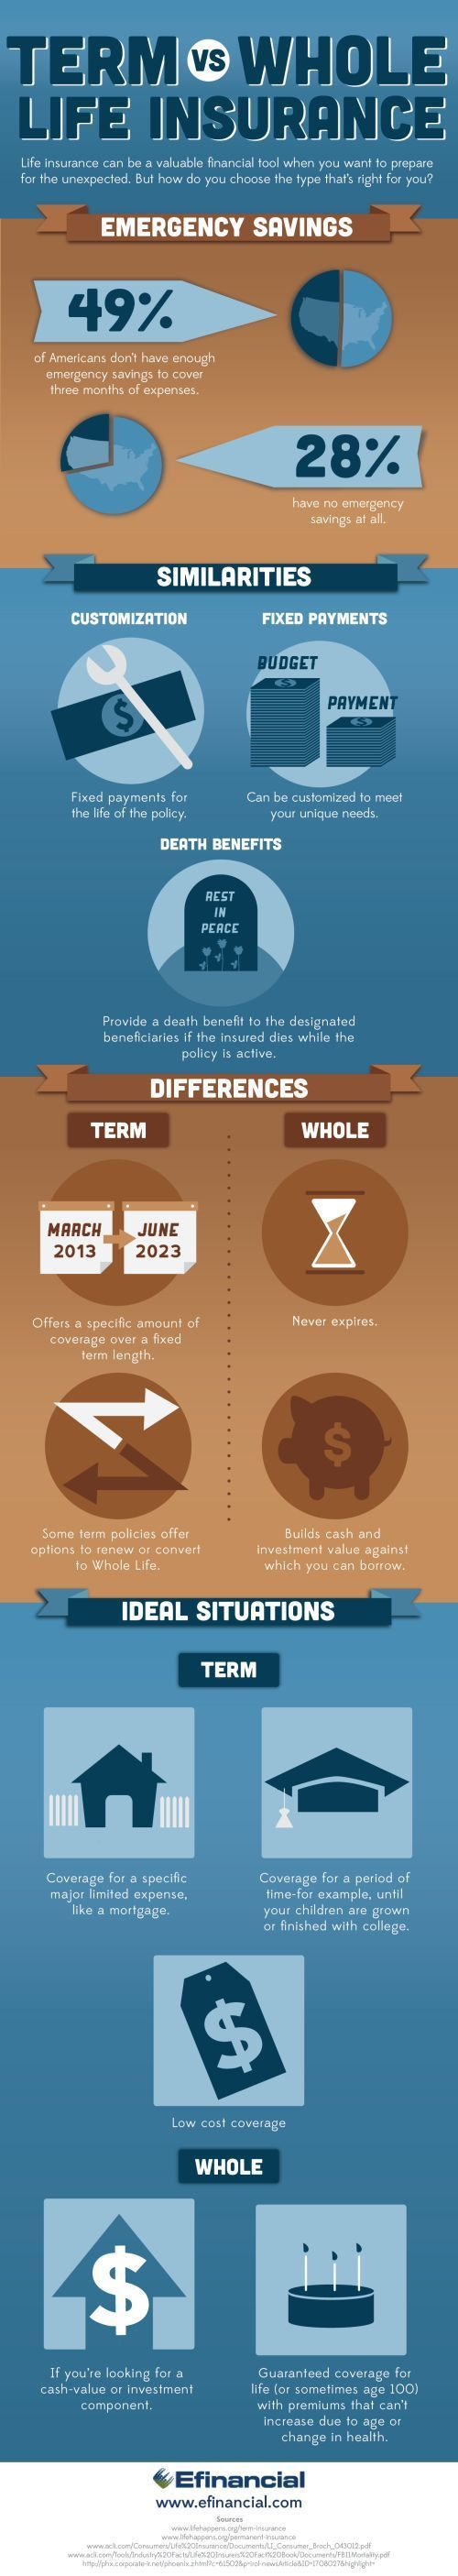 Whole Term Life Insurance Quotes Term Vswhole Life Insurance  Life Insurance Infographic